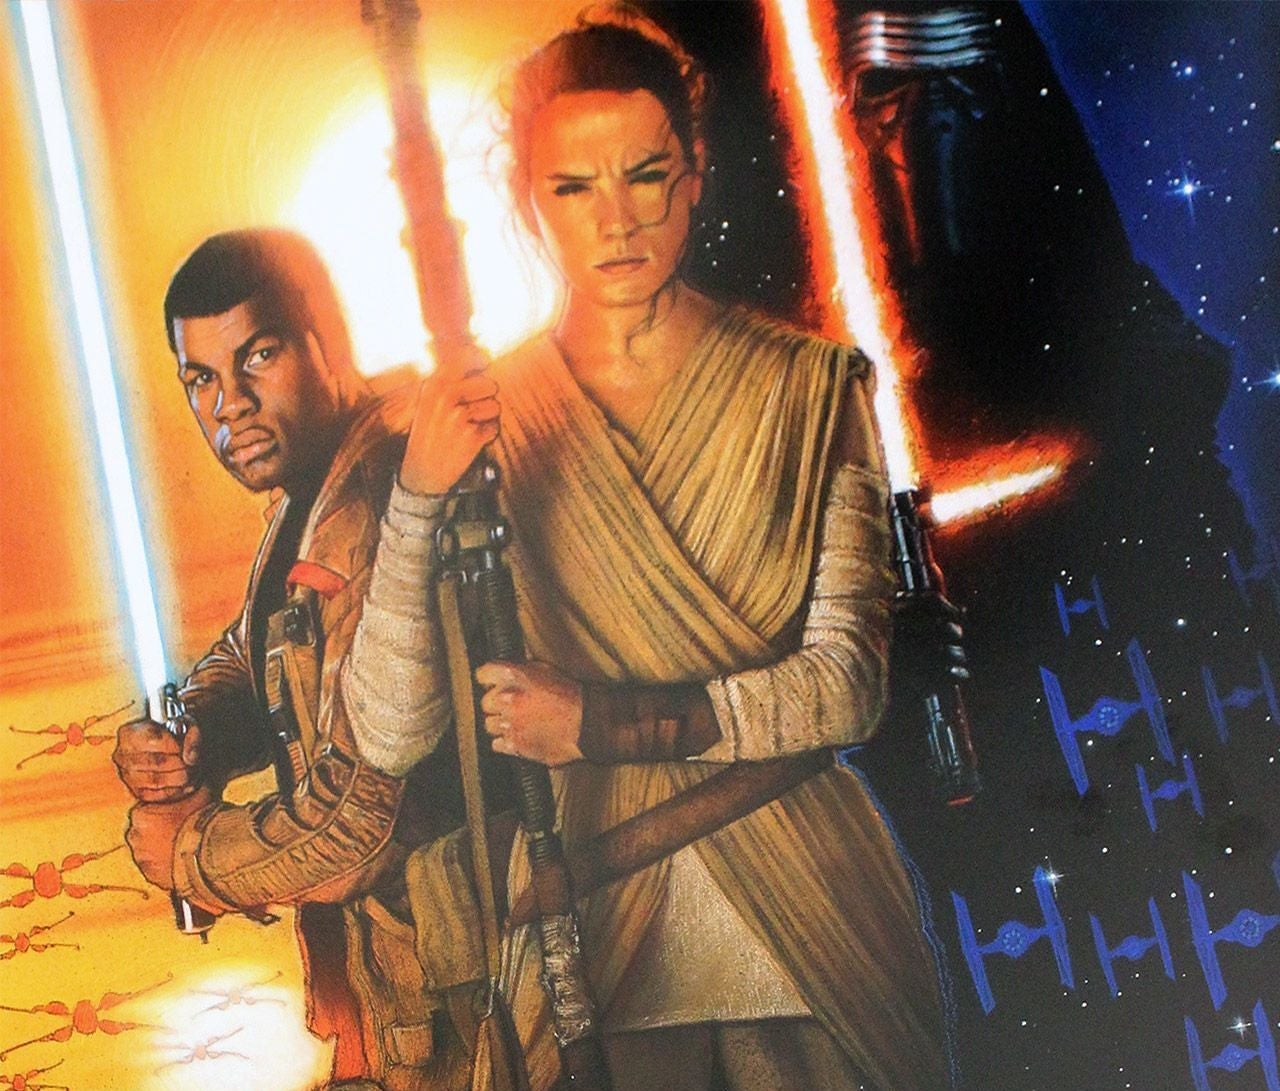 Star Wars Episode 7: The Force Awakens – Our Spoiler-Filled Review